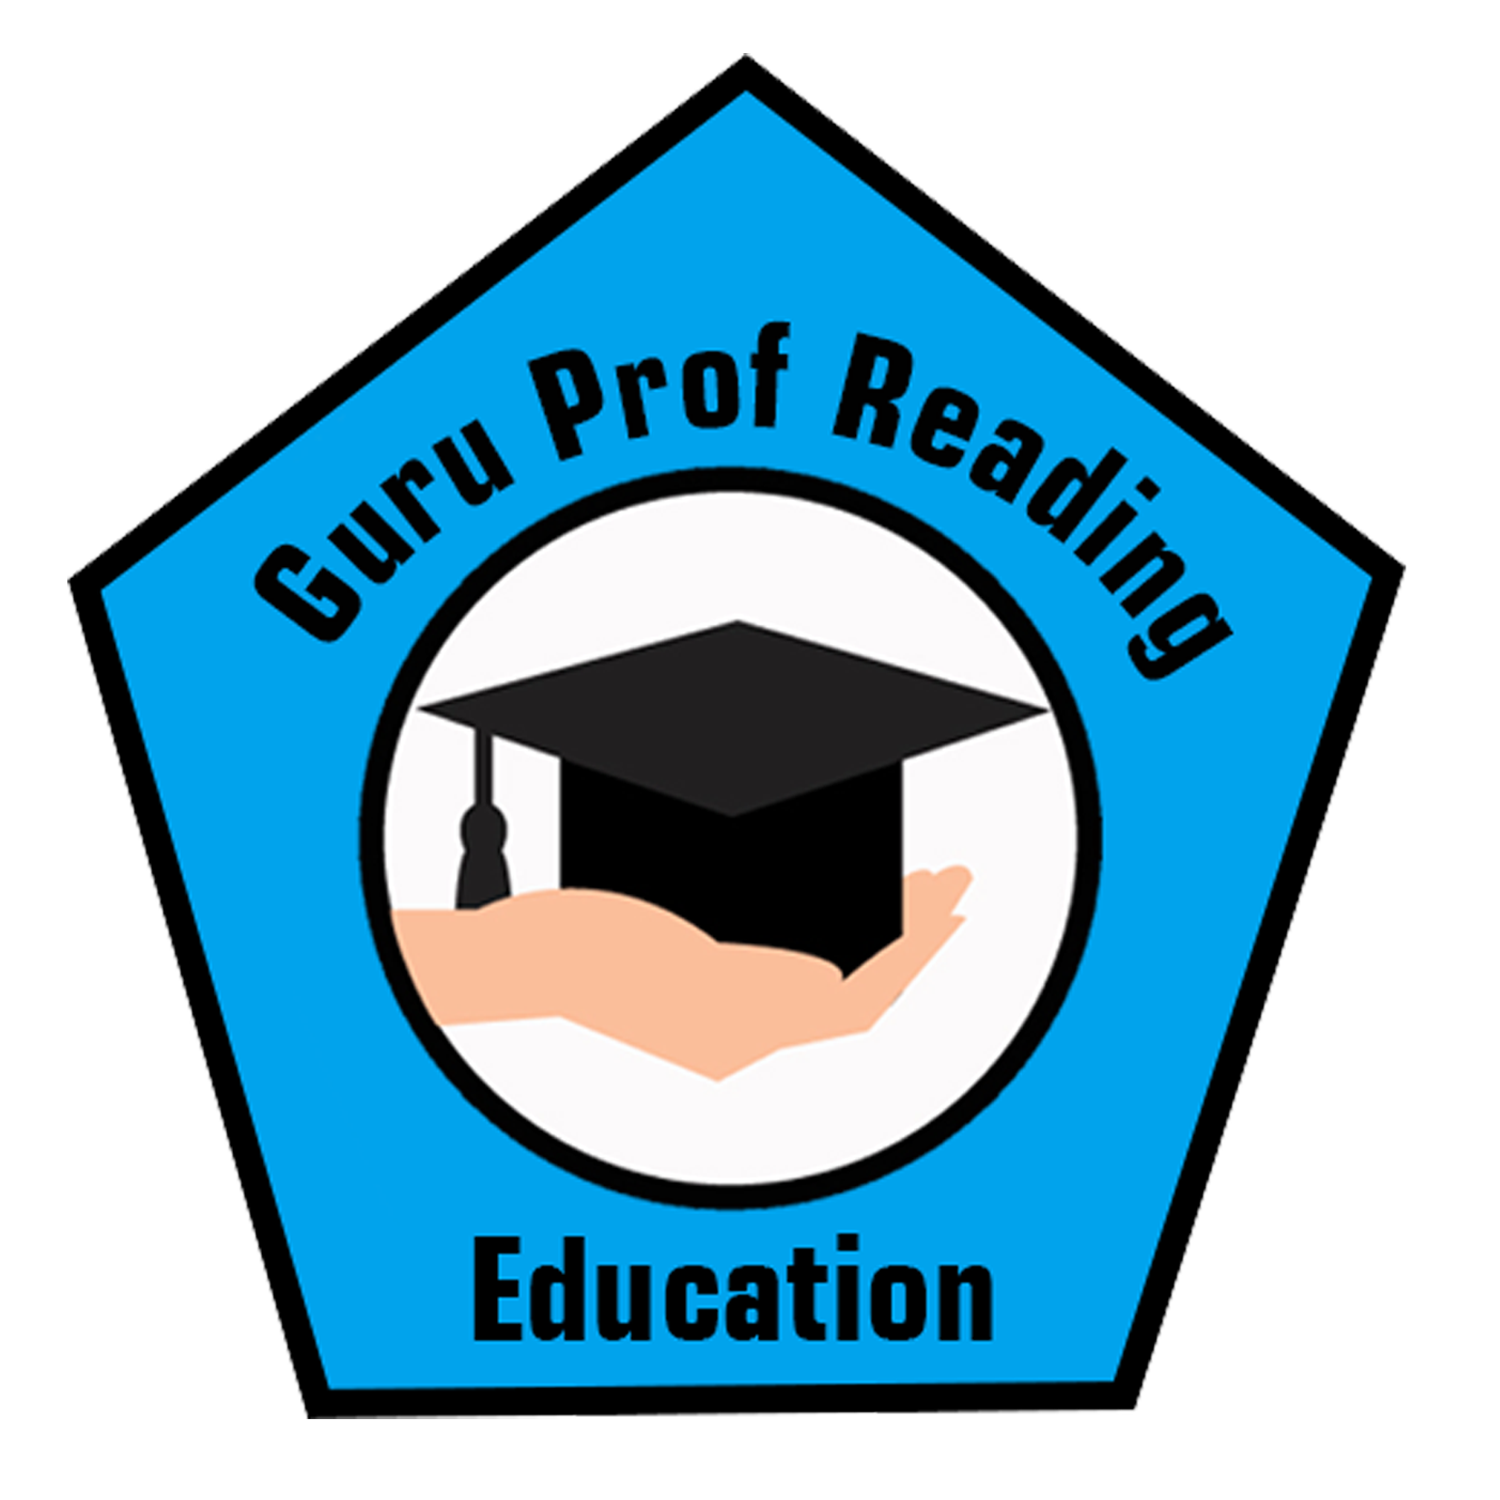 English clipart extensive reading. Education career